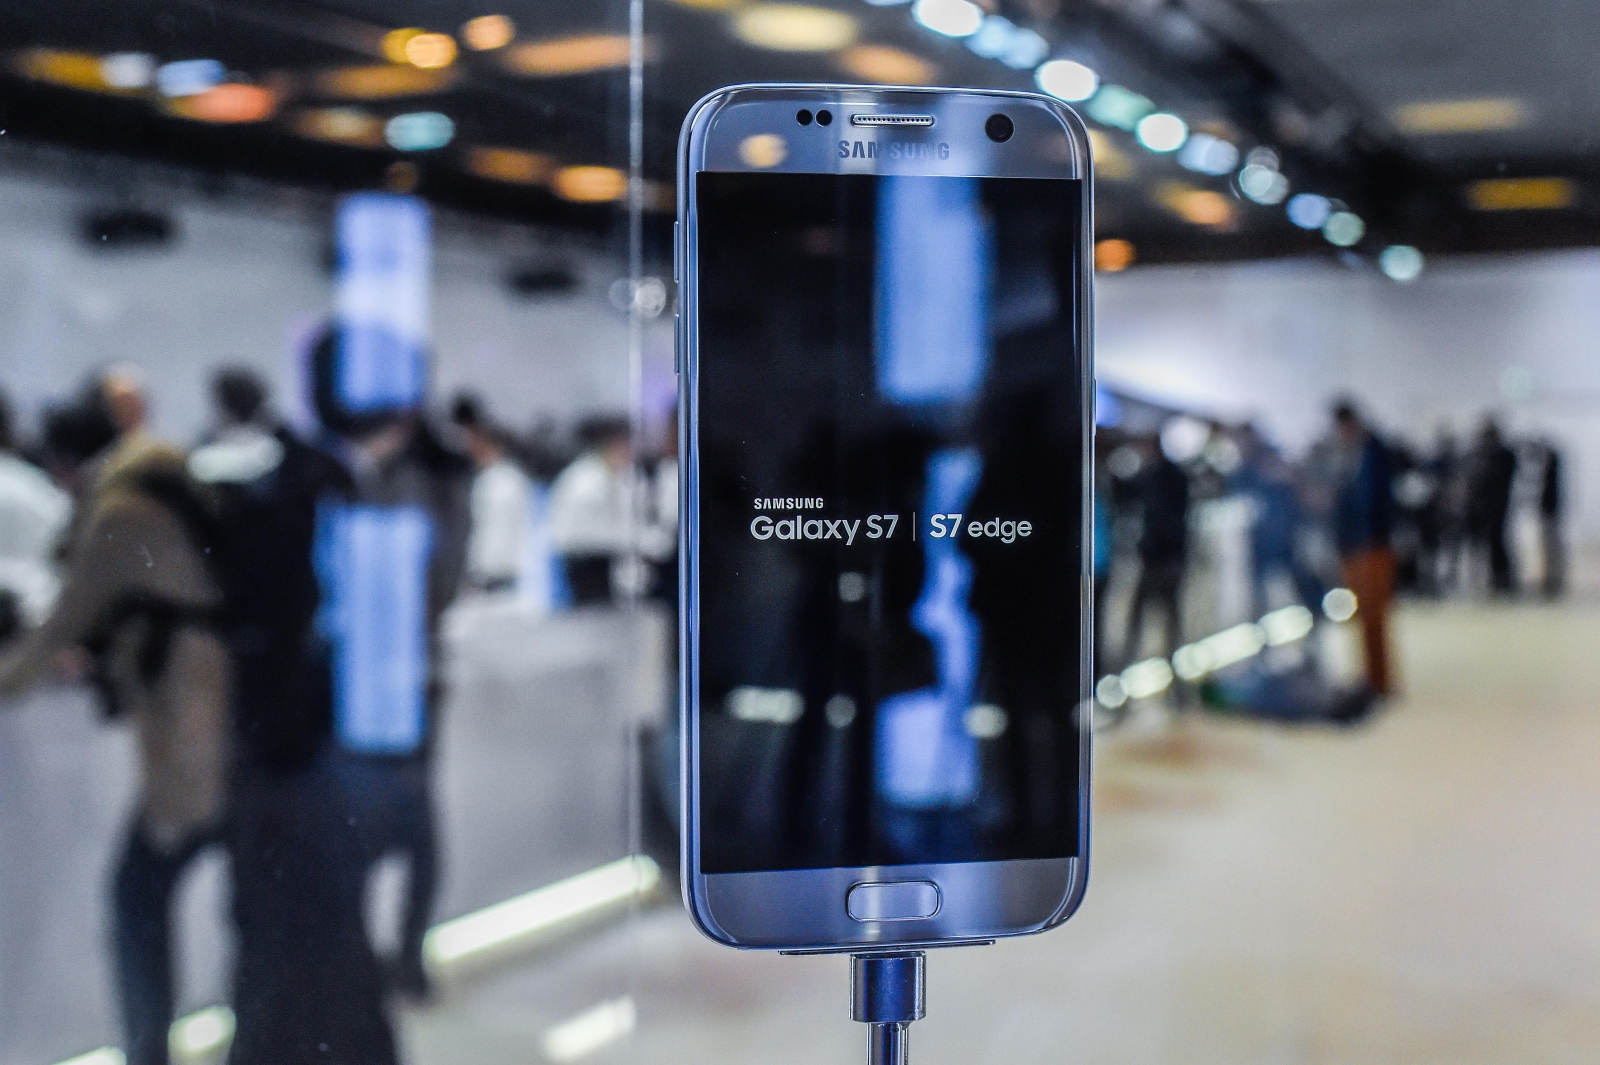 Galaxy S7, S7 Edge August security update